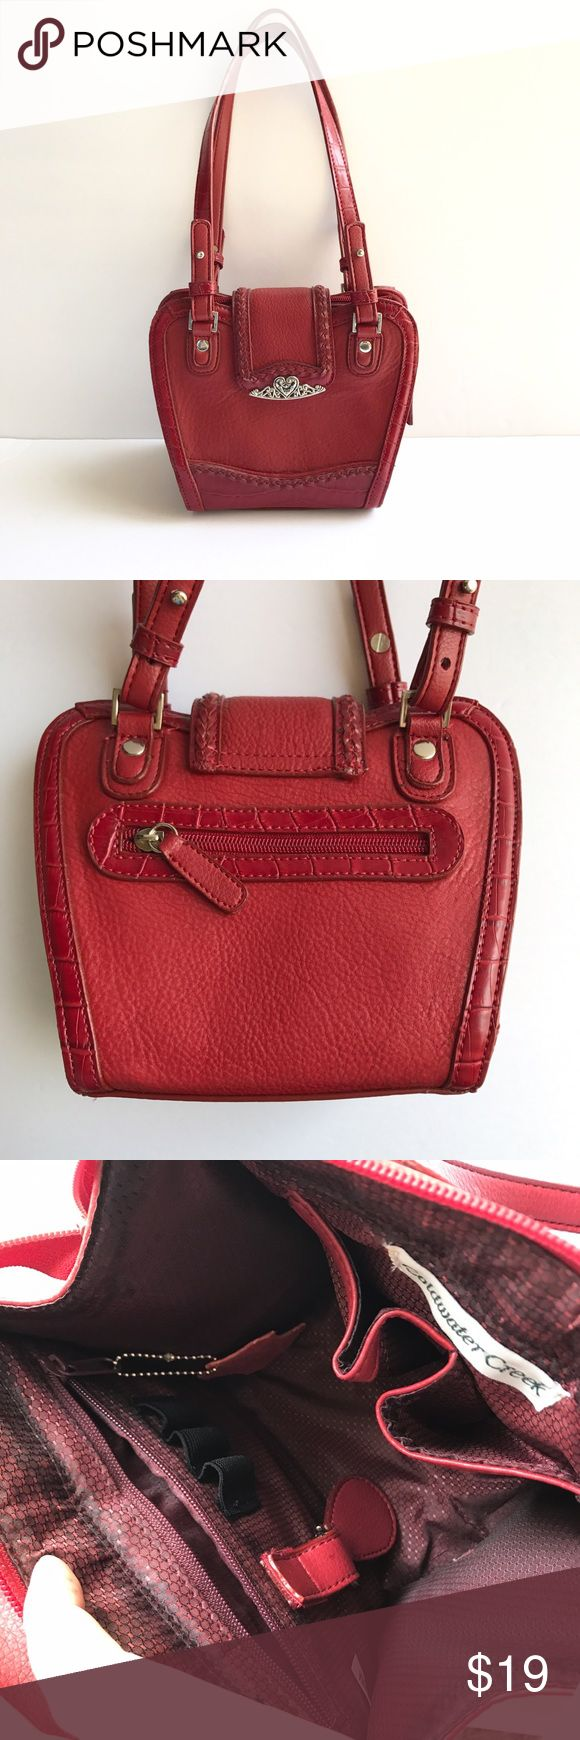 • Coldwater Creek • red shoulder bag Cute red purse! Several pockets inside and outside. Big enough for the essentials without being too large to handle. Gorgeous bag for errands! Nice metallic heart detail. Coldwater Creek Bags Shoulder Bags